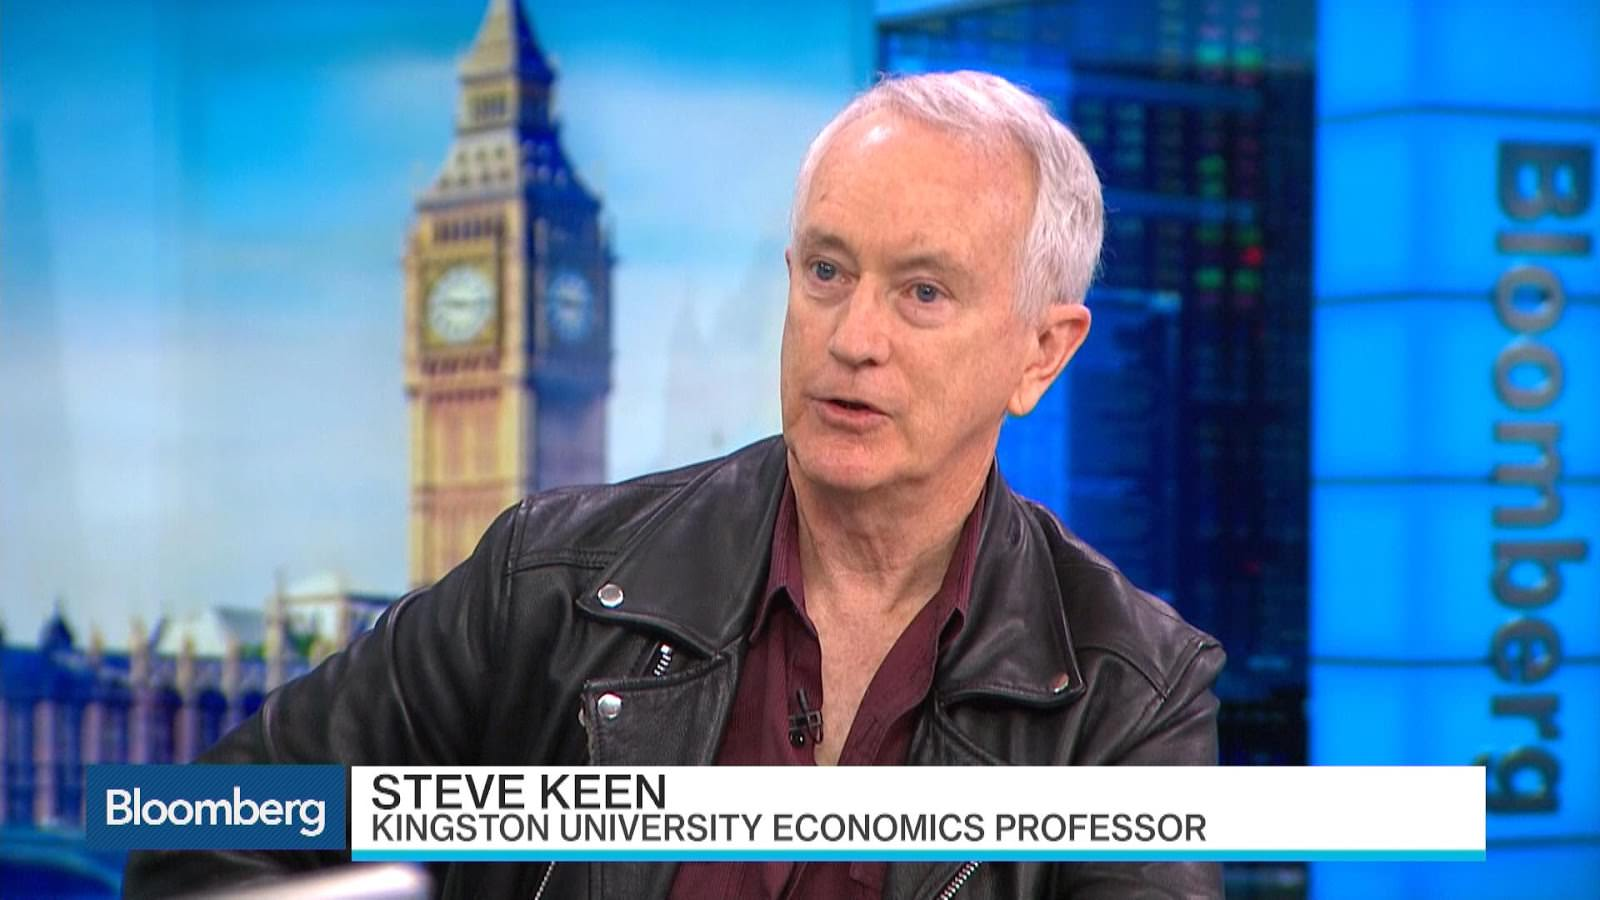 Professor Steve Keen Lost $75k of His Research Funding: Here's How He Got it Back